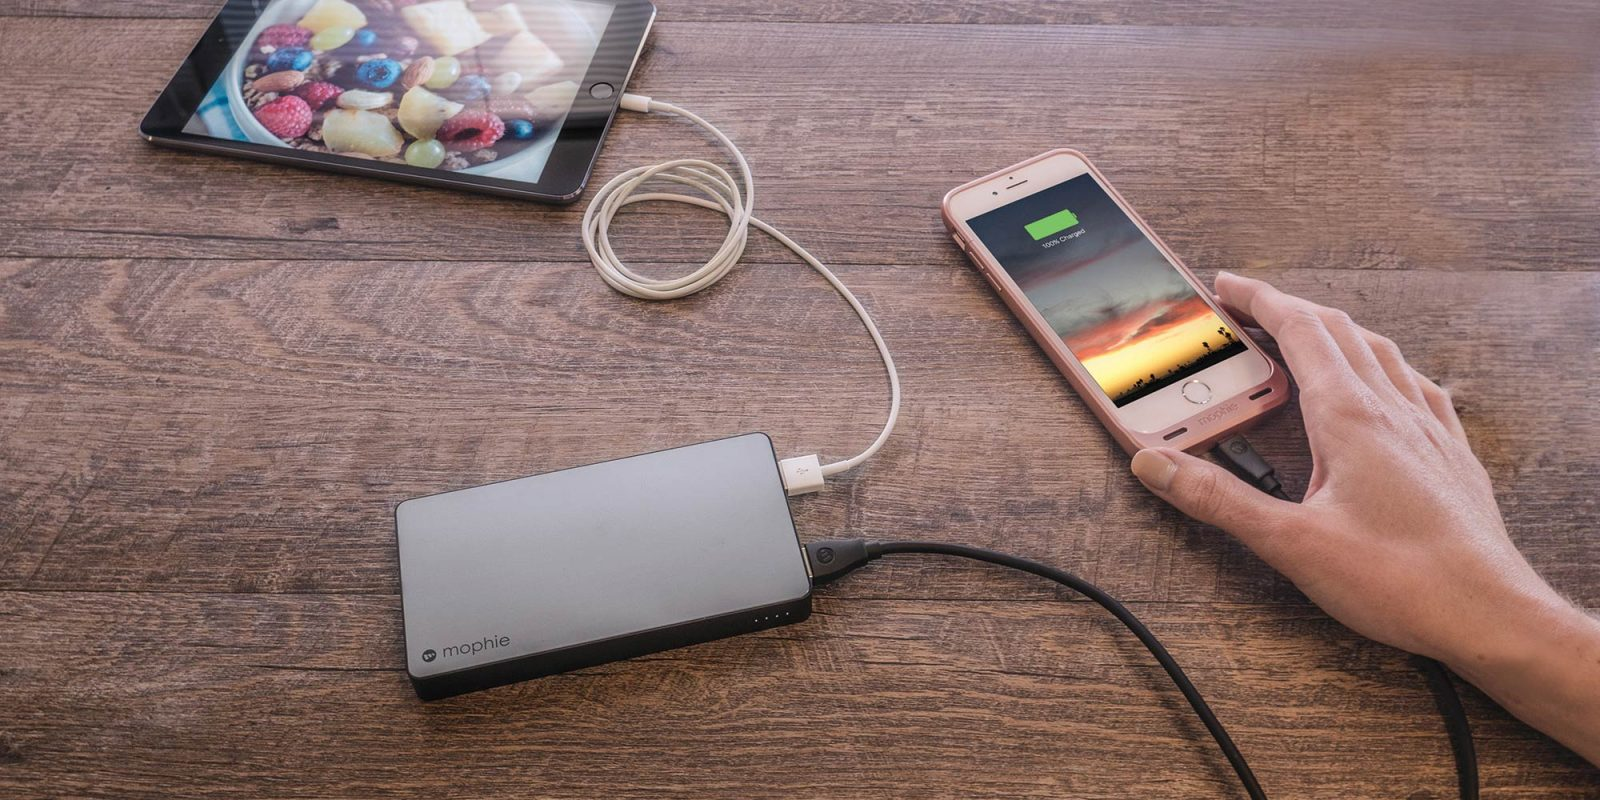 new arrival f1bf2 91aa1 Smartphone Accessories: mophie Powerstation 6000mAh Battery Bank $35 ...